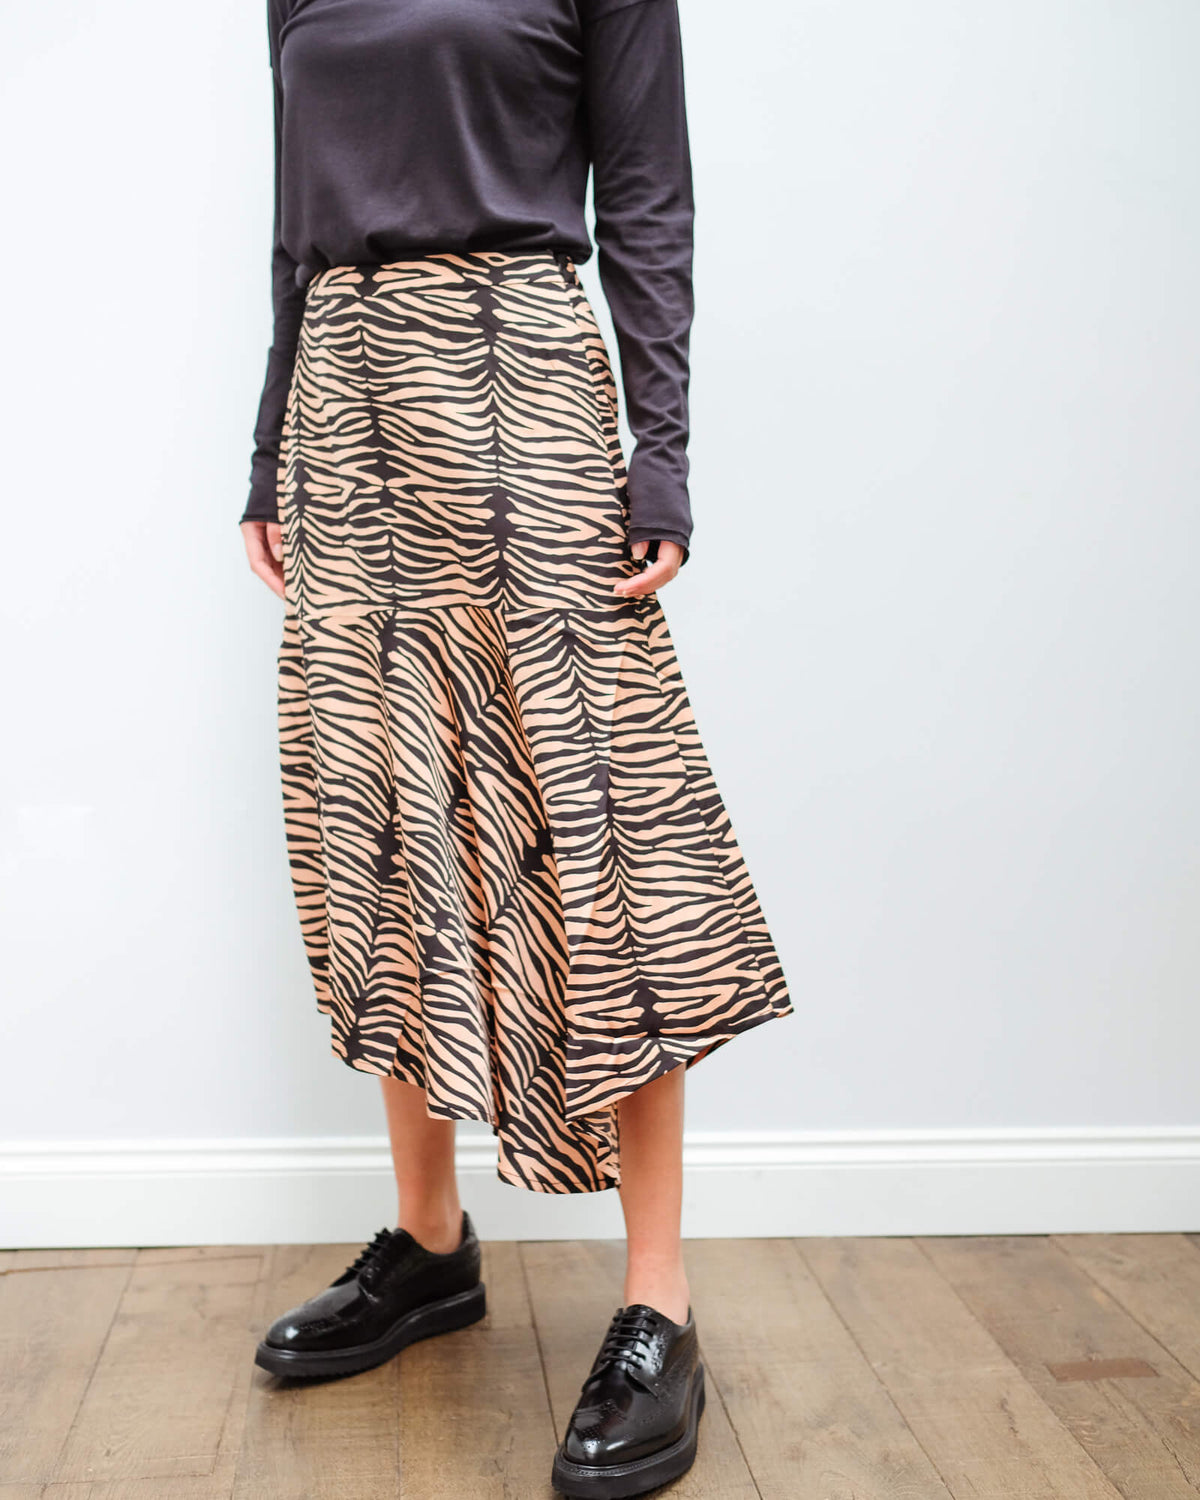 M Key zebra skirt in camel